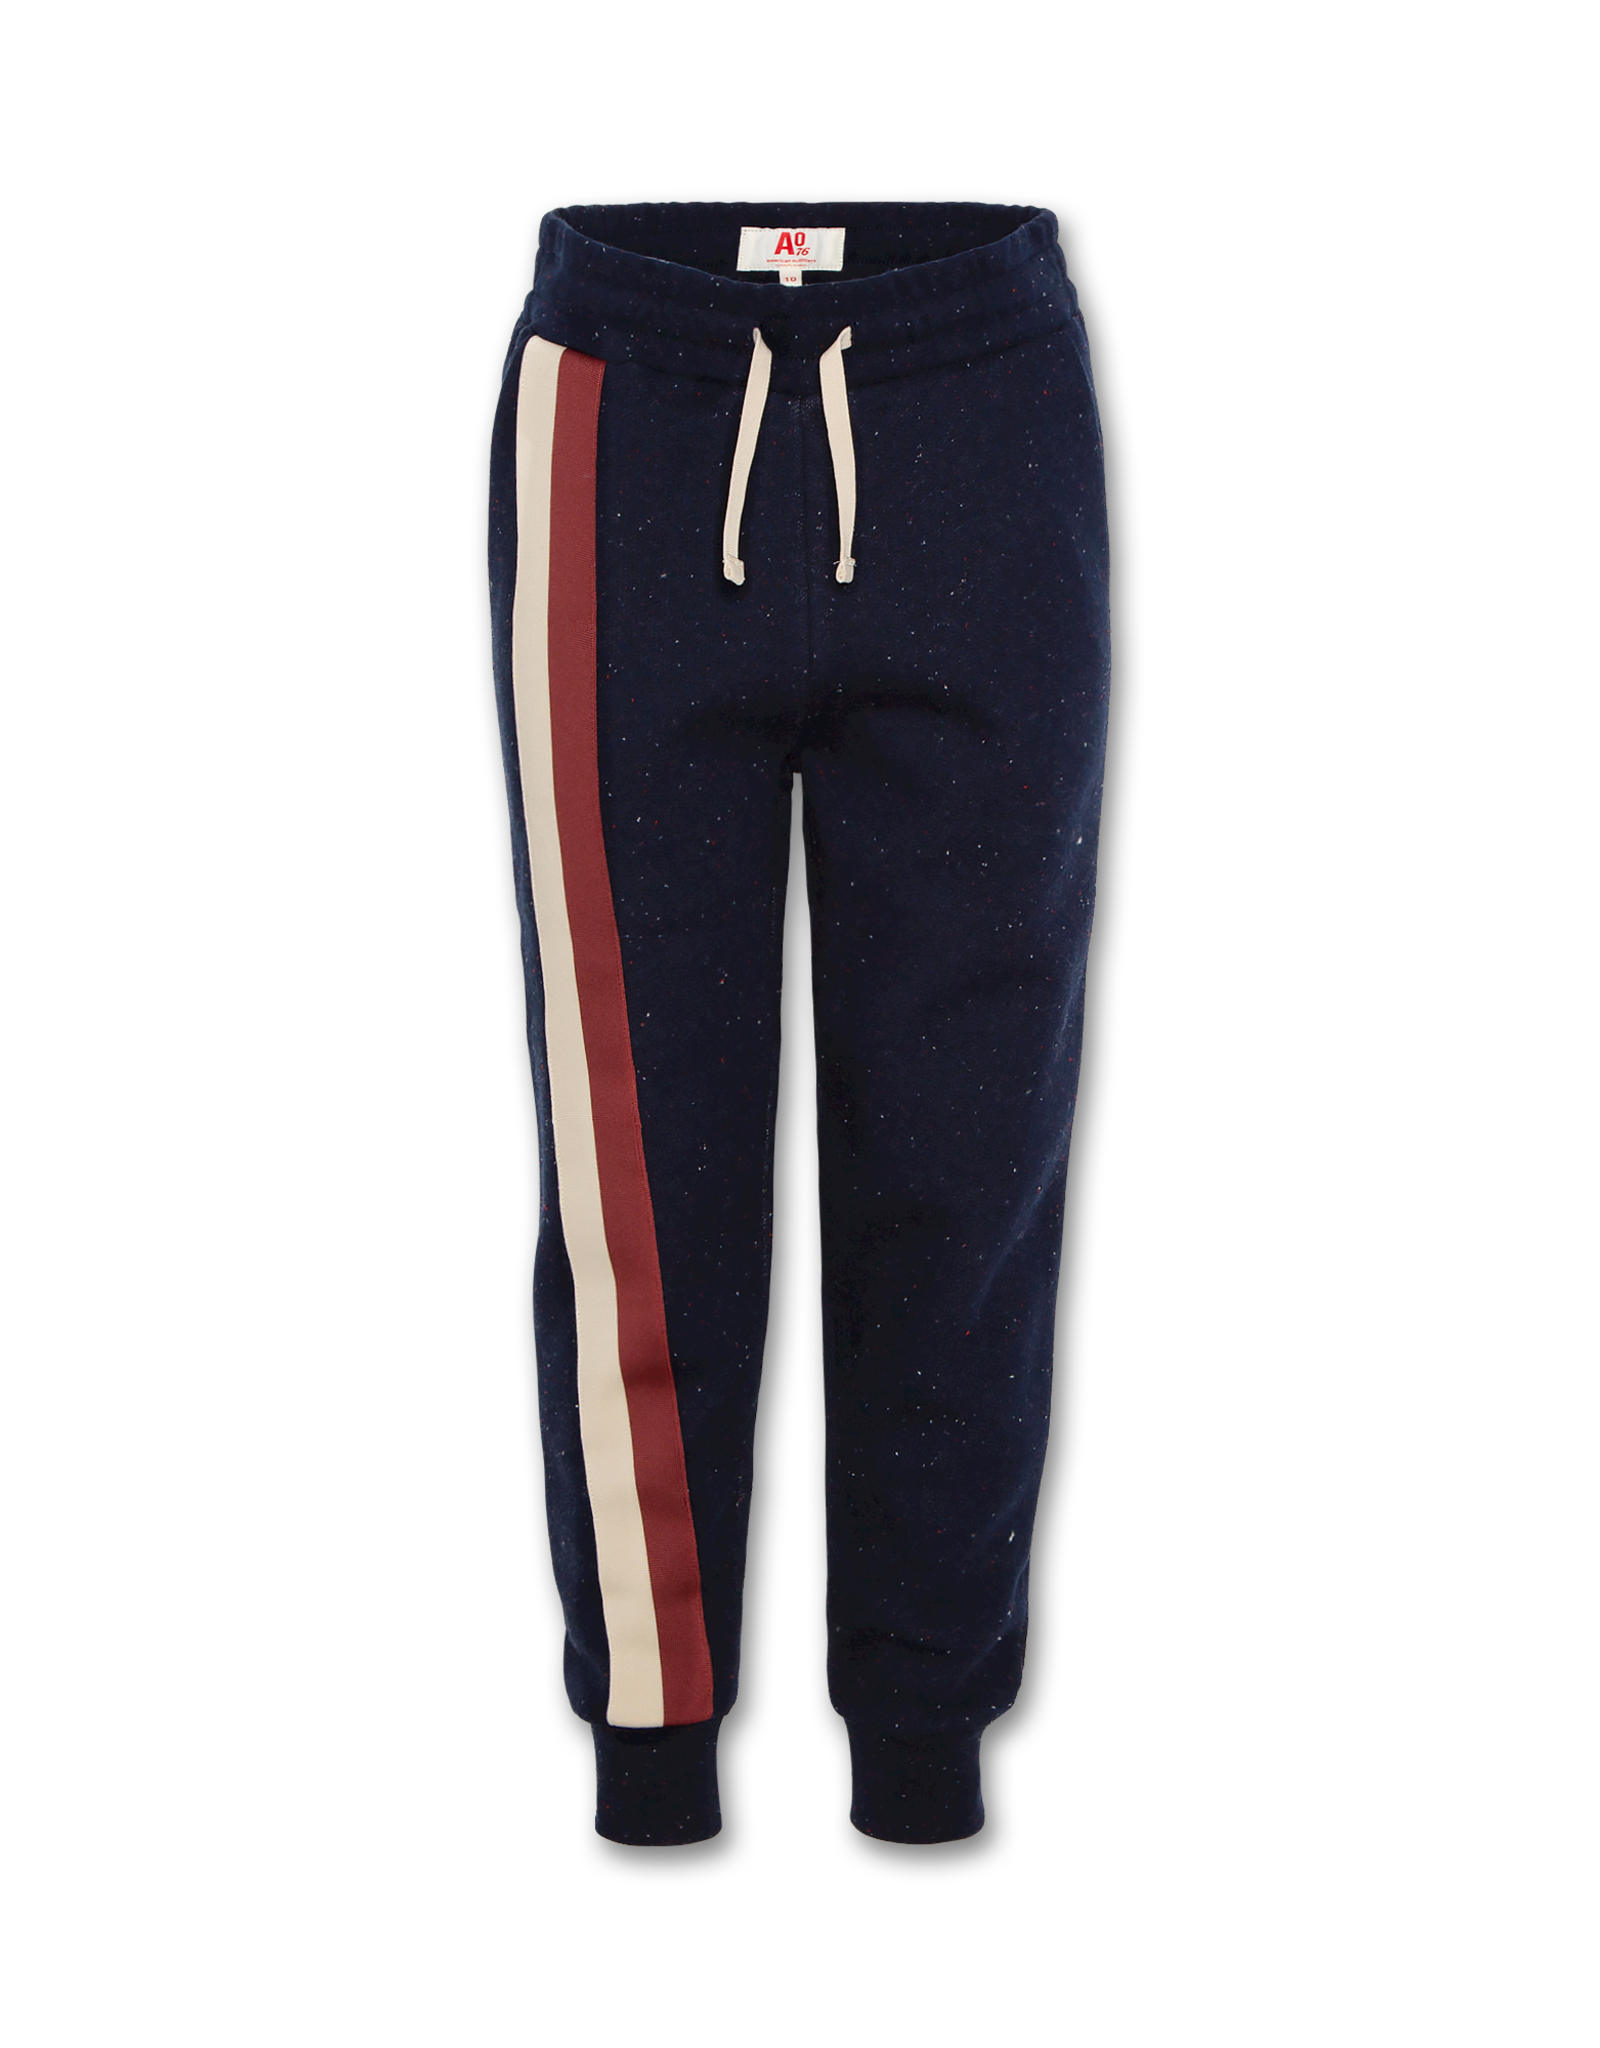 American Outfitters AO sweater pants tape navy